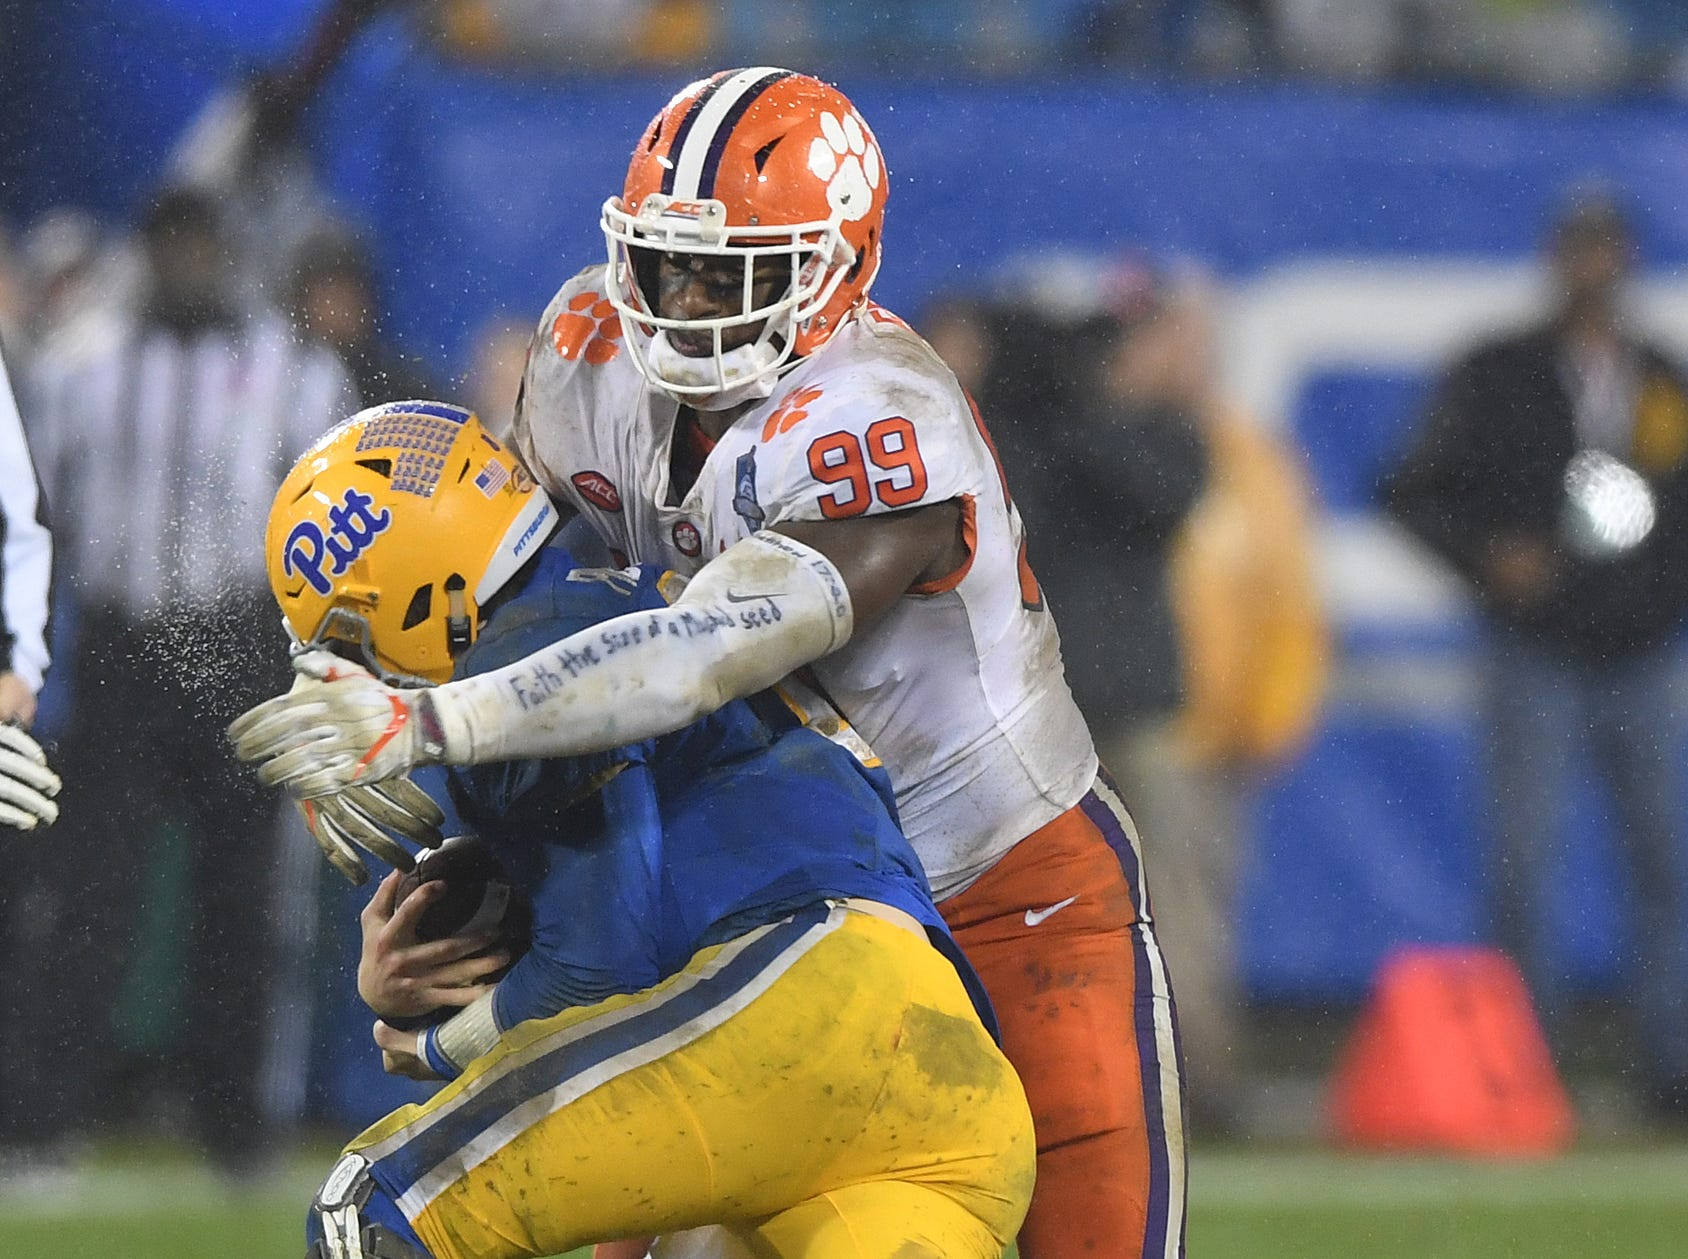 Clemson defensive lineman Clelin Ferrell (99) sacks Pittsburgh quarterback Kenny Pickett (8) during the 2nd quarter of the Dr. Pepper ACC Championship at Bank of America Stadium in Charlotte, N.C. Saturday, December 1, 2017.